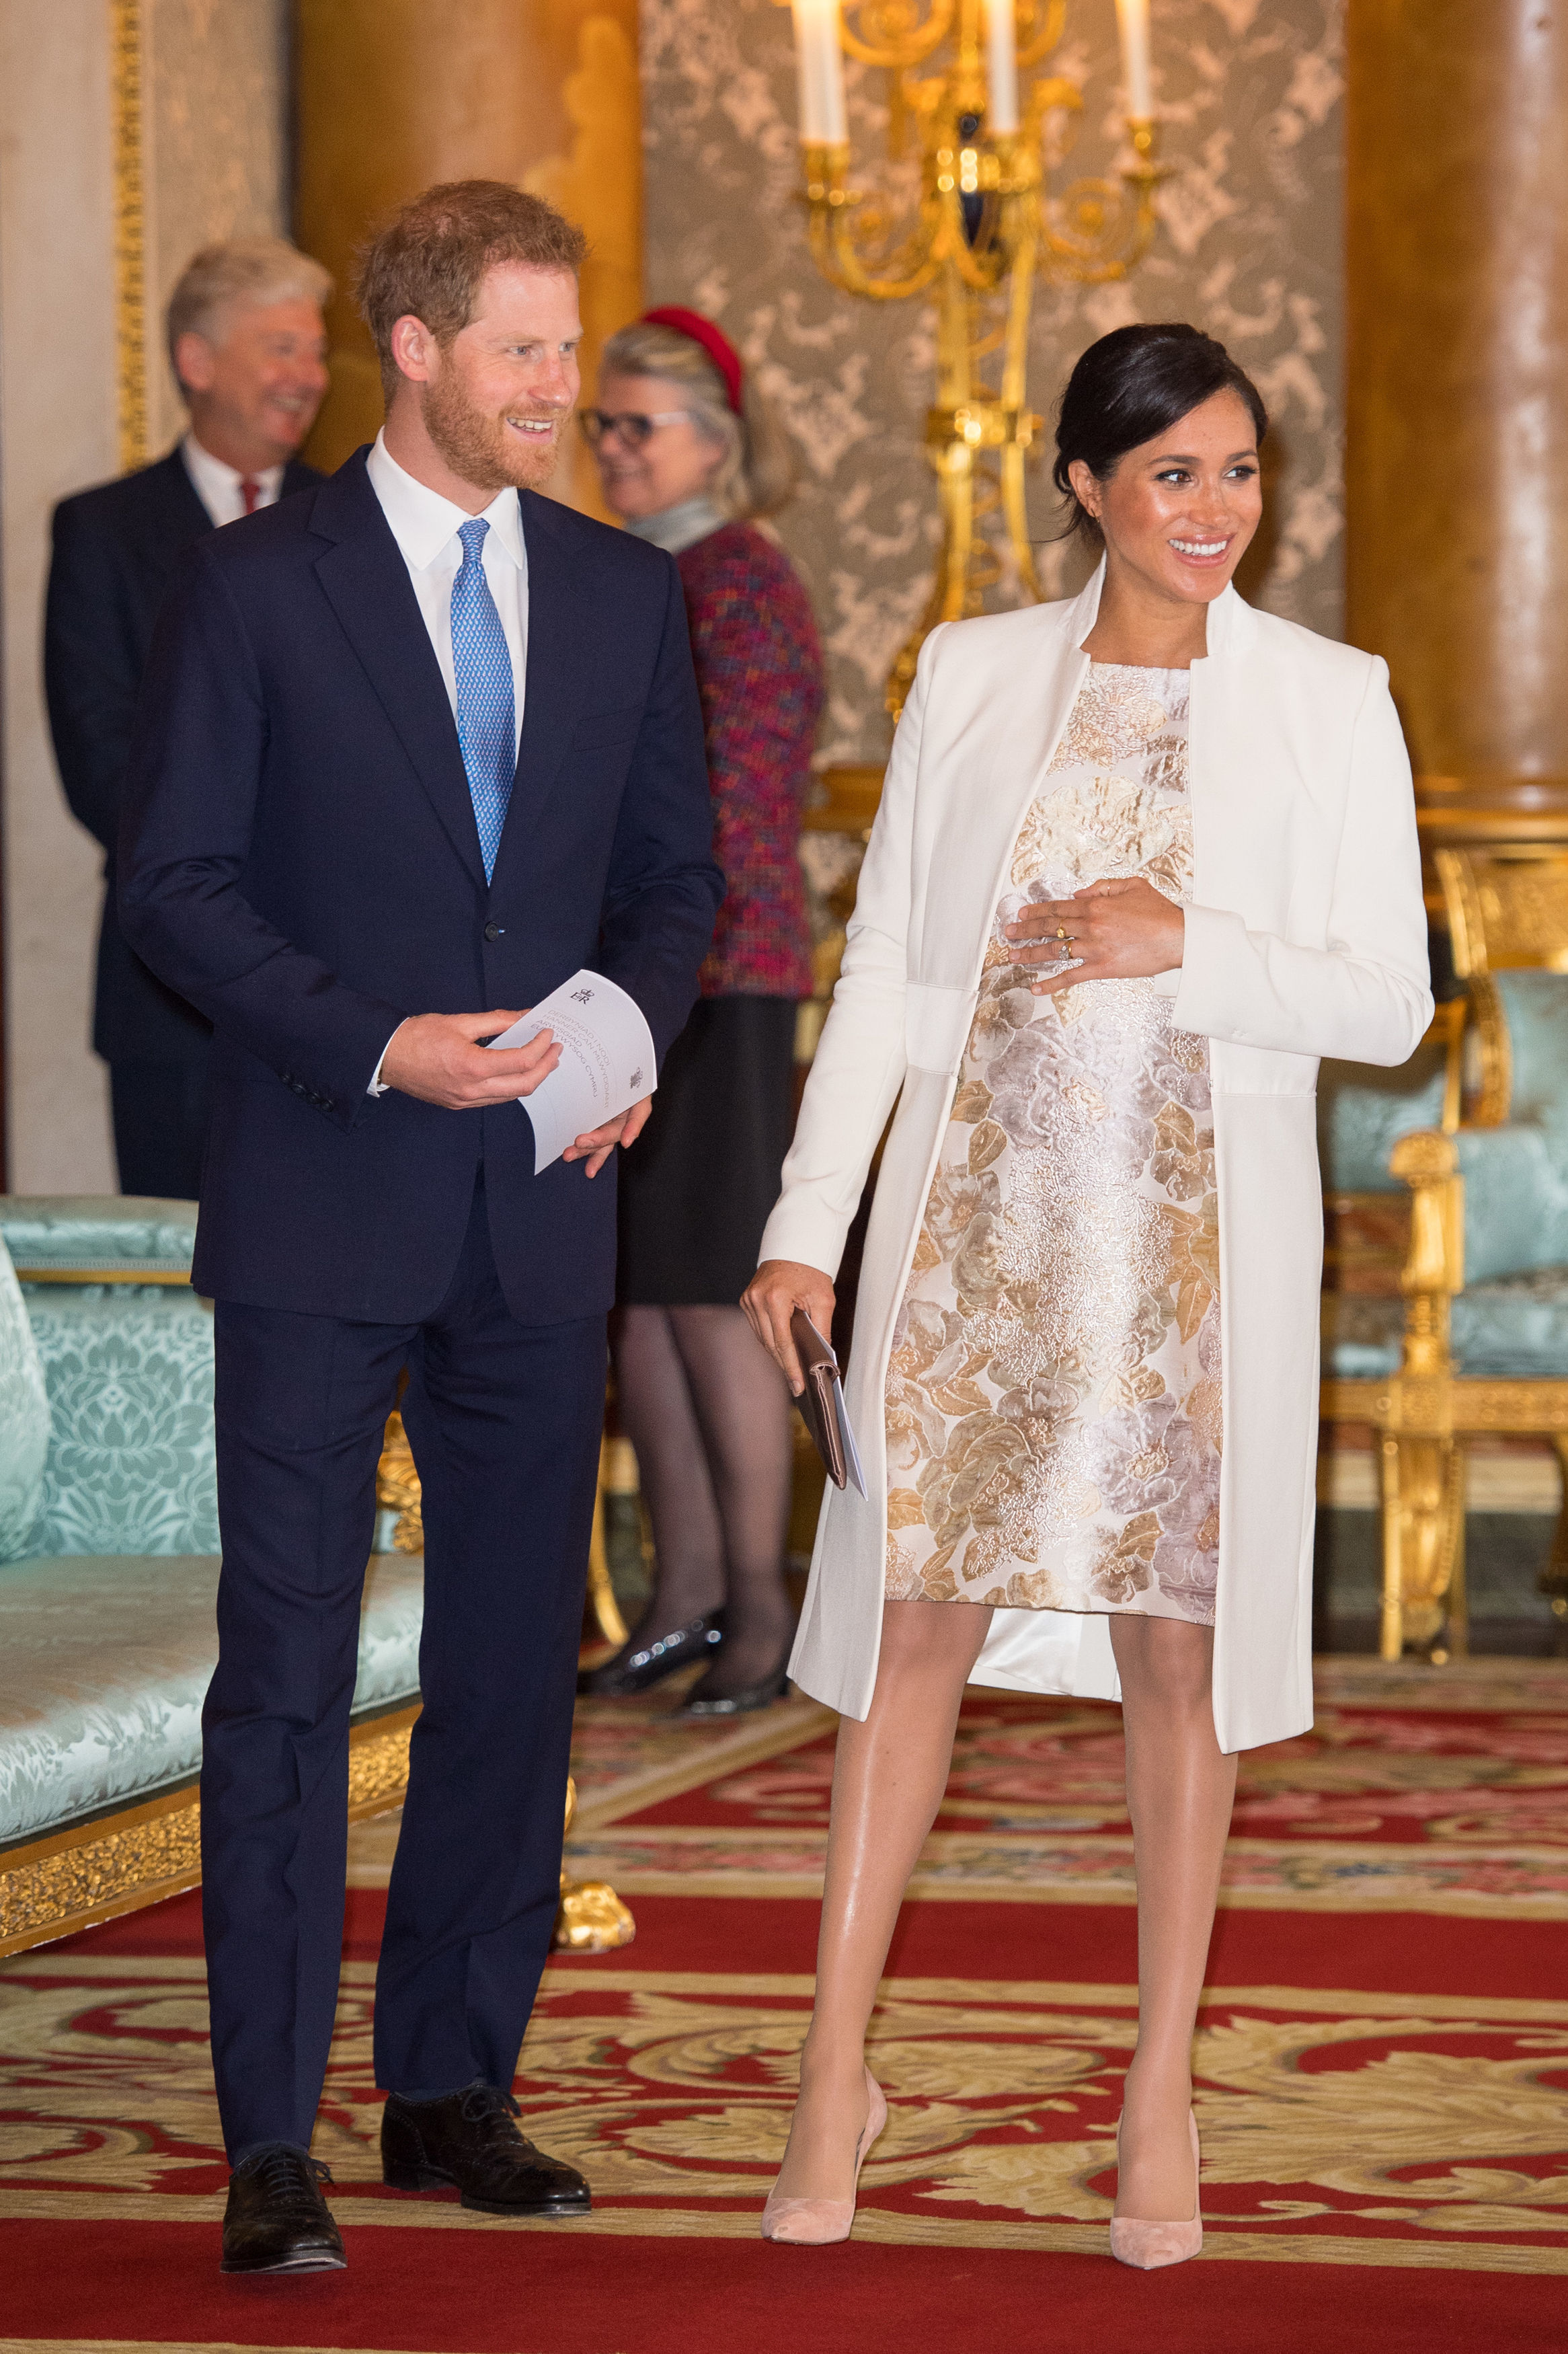 The Duke and Duchess of Sussex attend a reception at Buckingham Palace